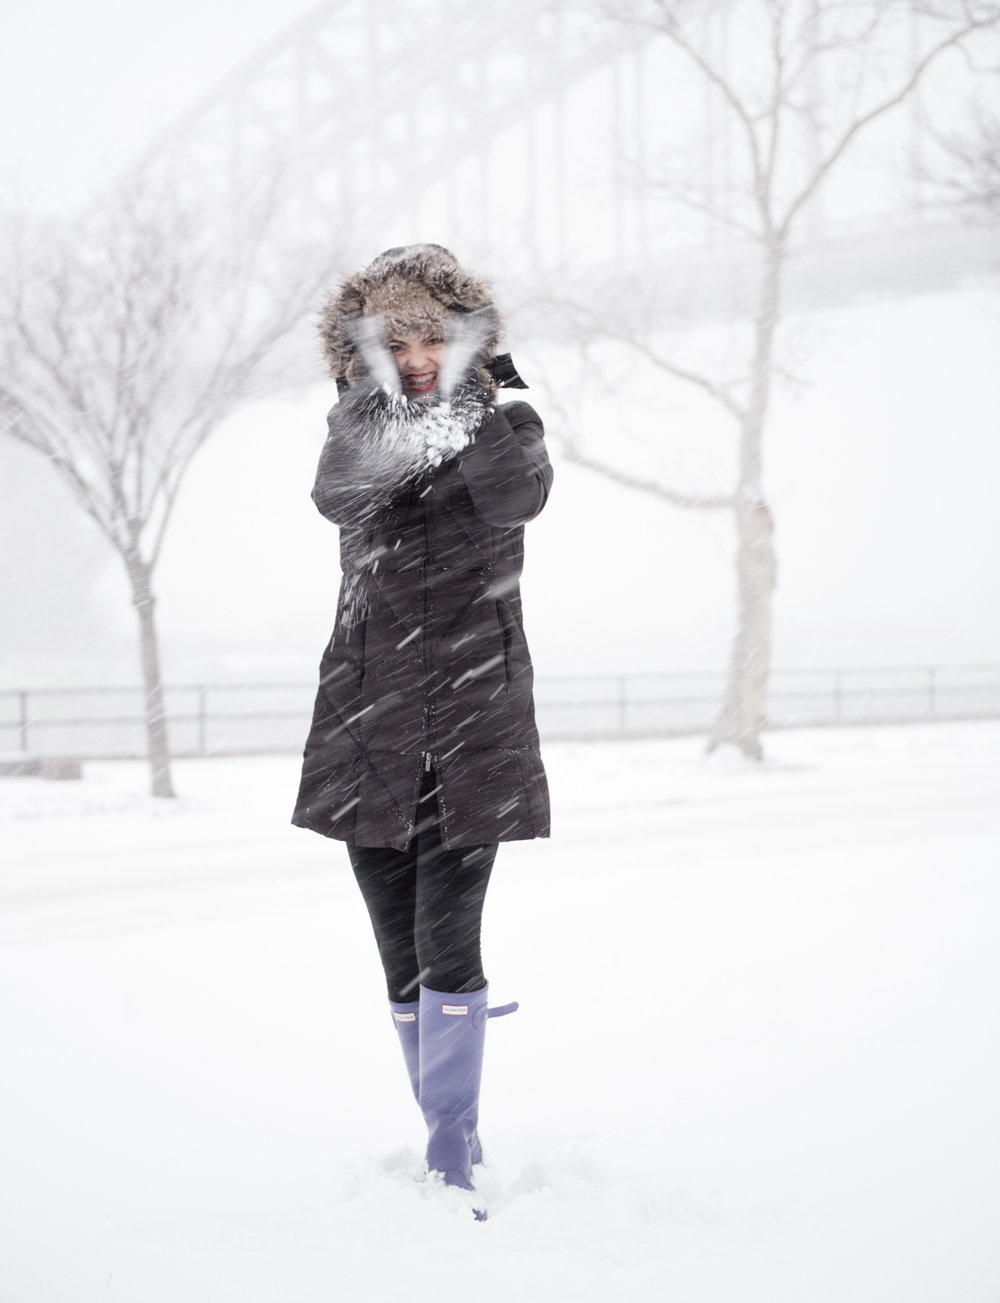 A Social Media Photography example of using weather (a snowstorm) to showcase the fun loving personality of Entrepreneur, Kim Caldwell. Taken in Astoria, New York City.